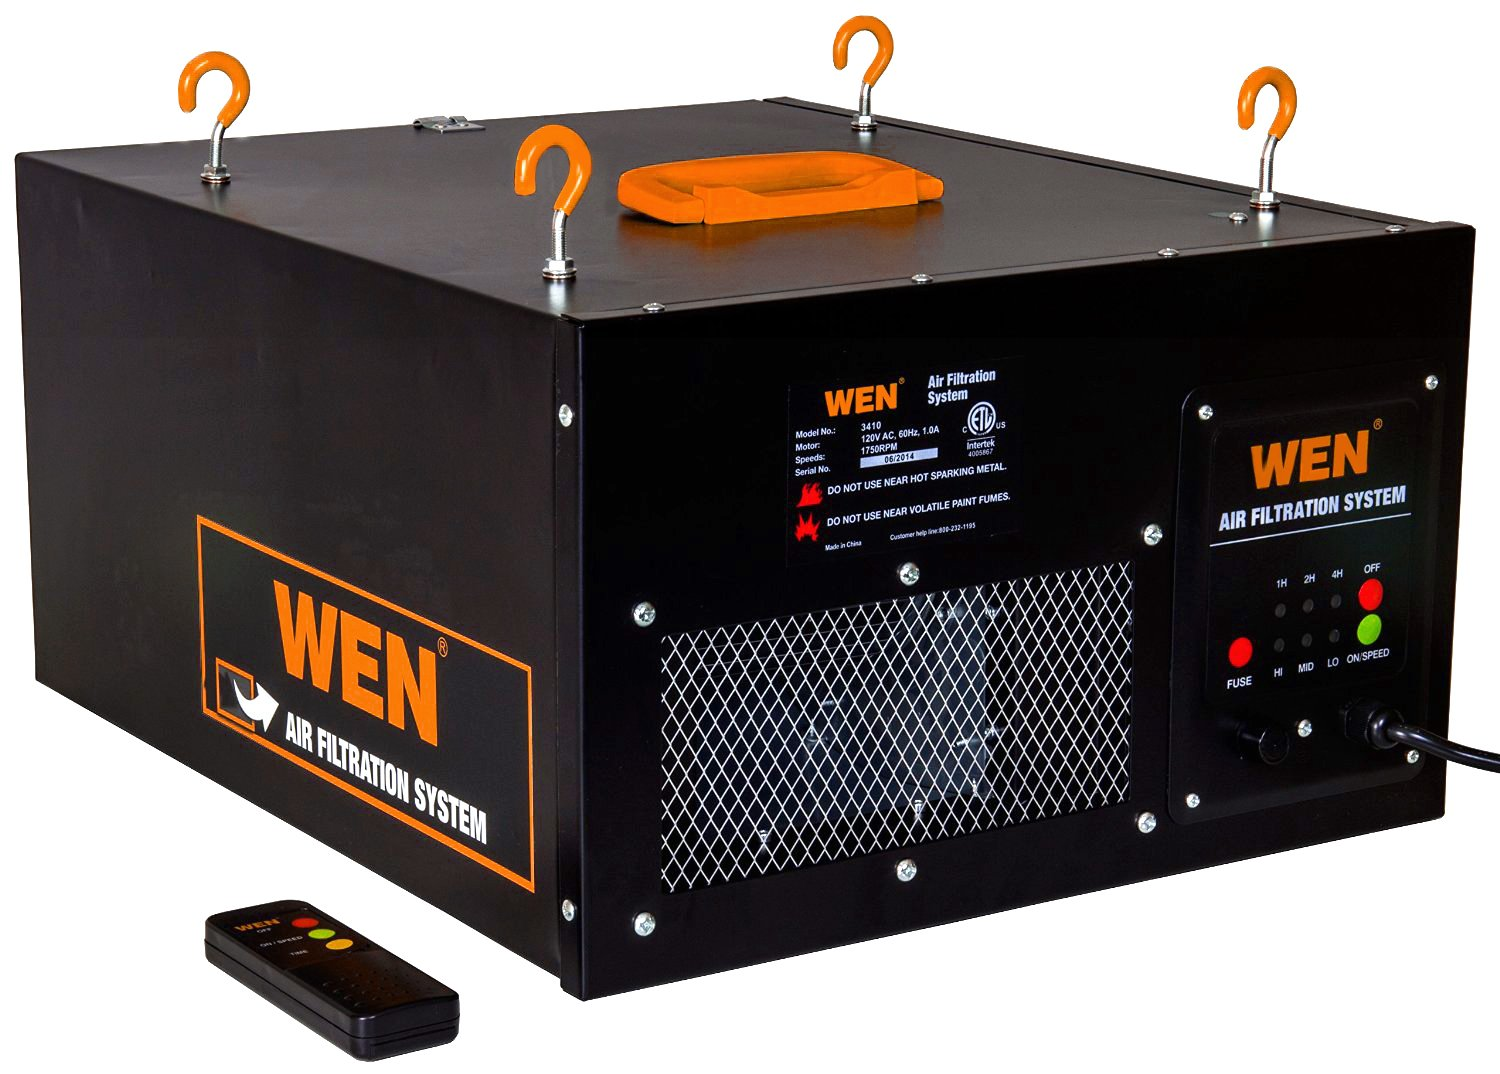 WEN 3410 3-Speed Remote-Controlled Air Filtration System (300/350/400 CFM) by WEN